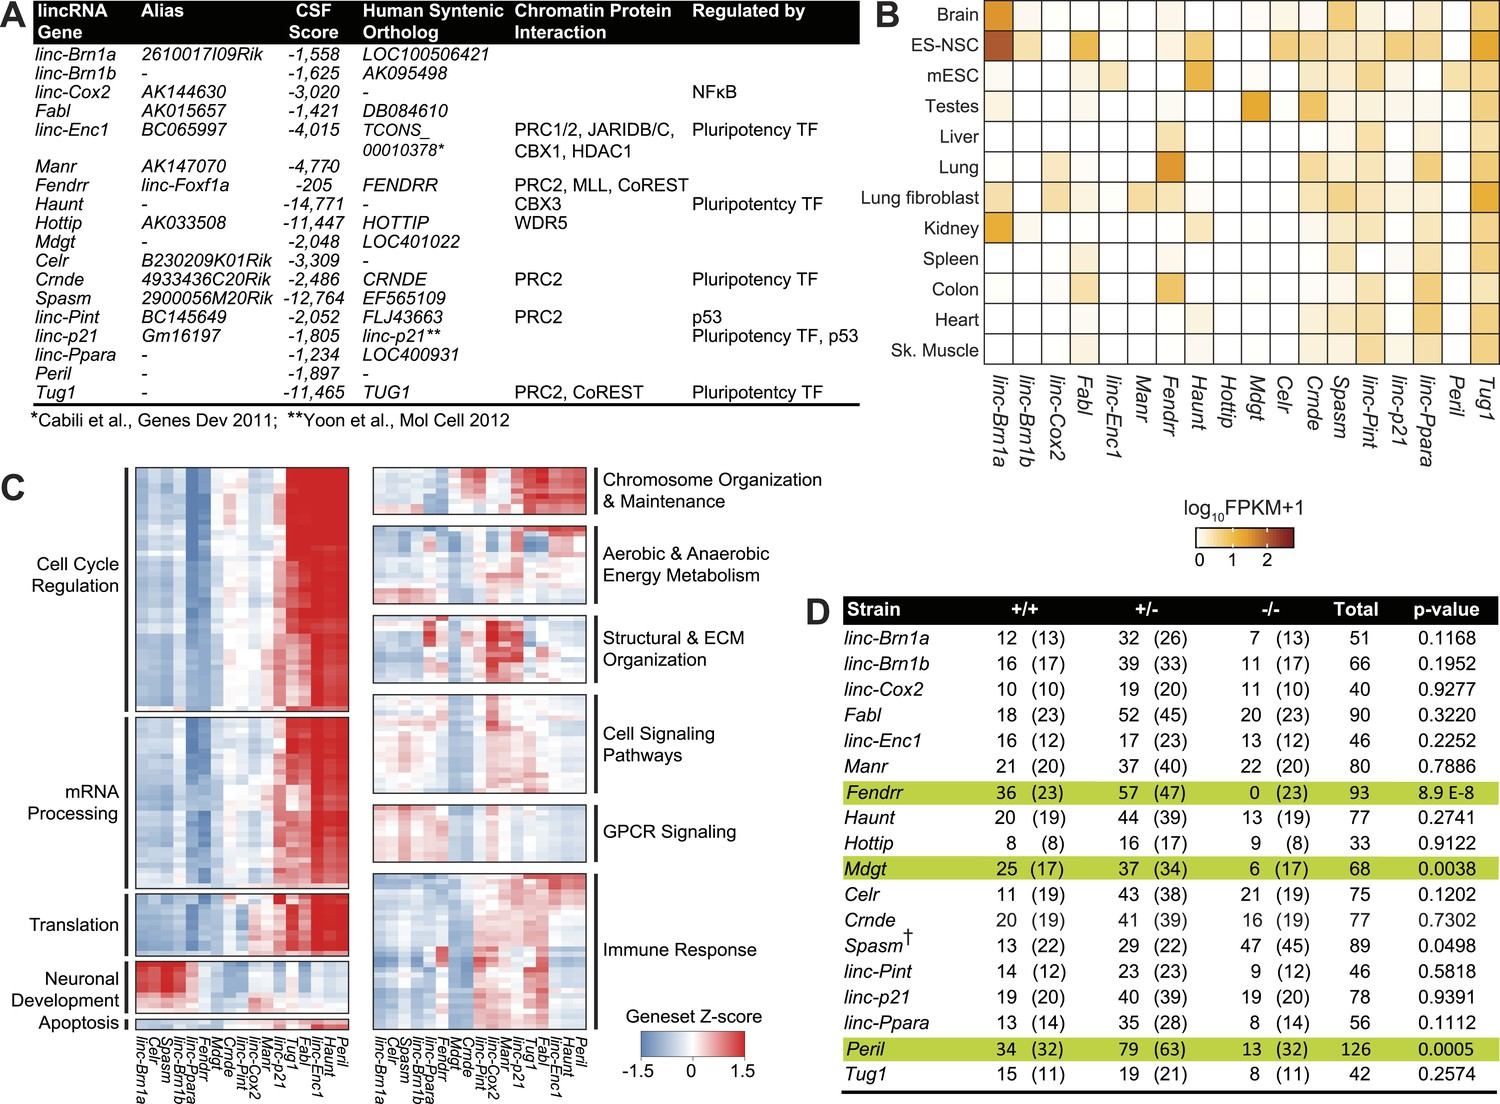 Multiple knockout mouse models reveal lincRNAs are required for life